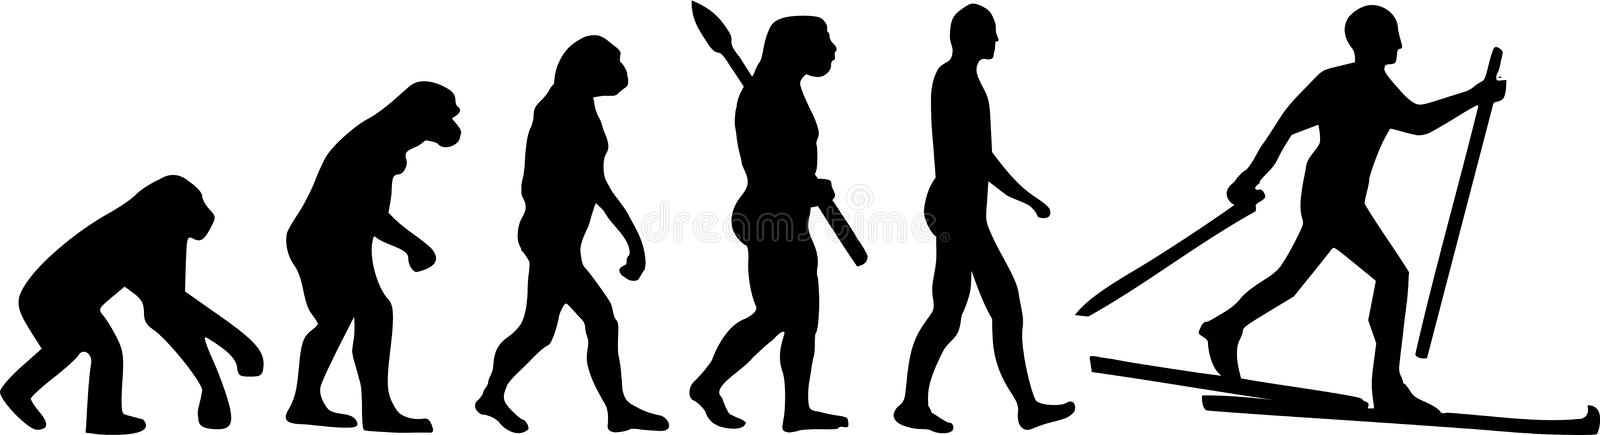 Download Cross Country Ski Evolution Stock Image